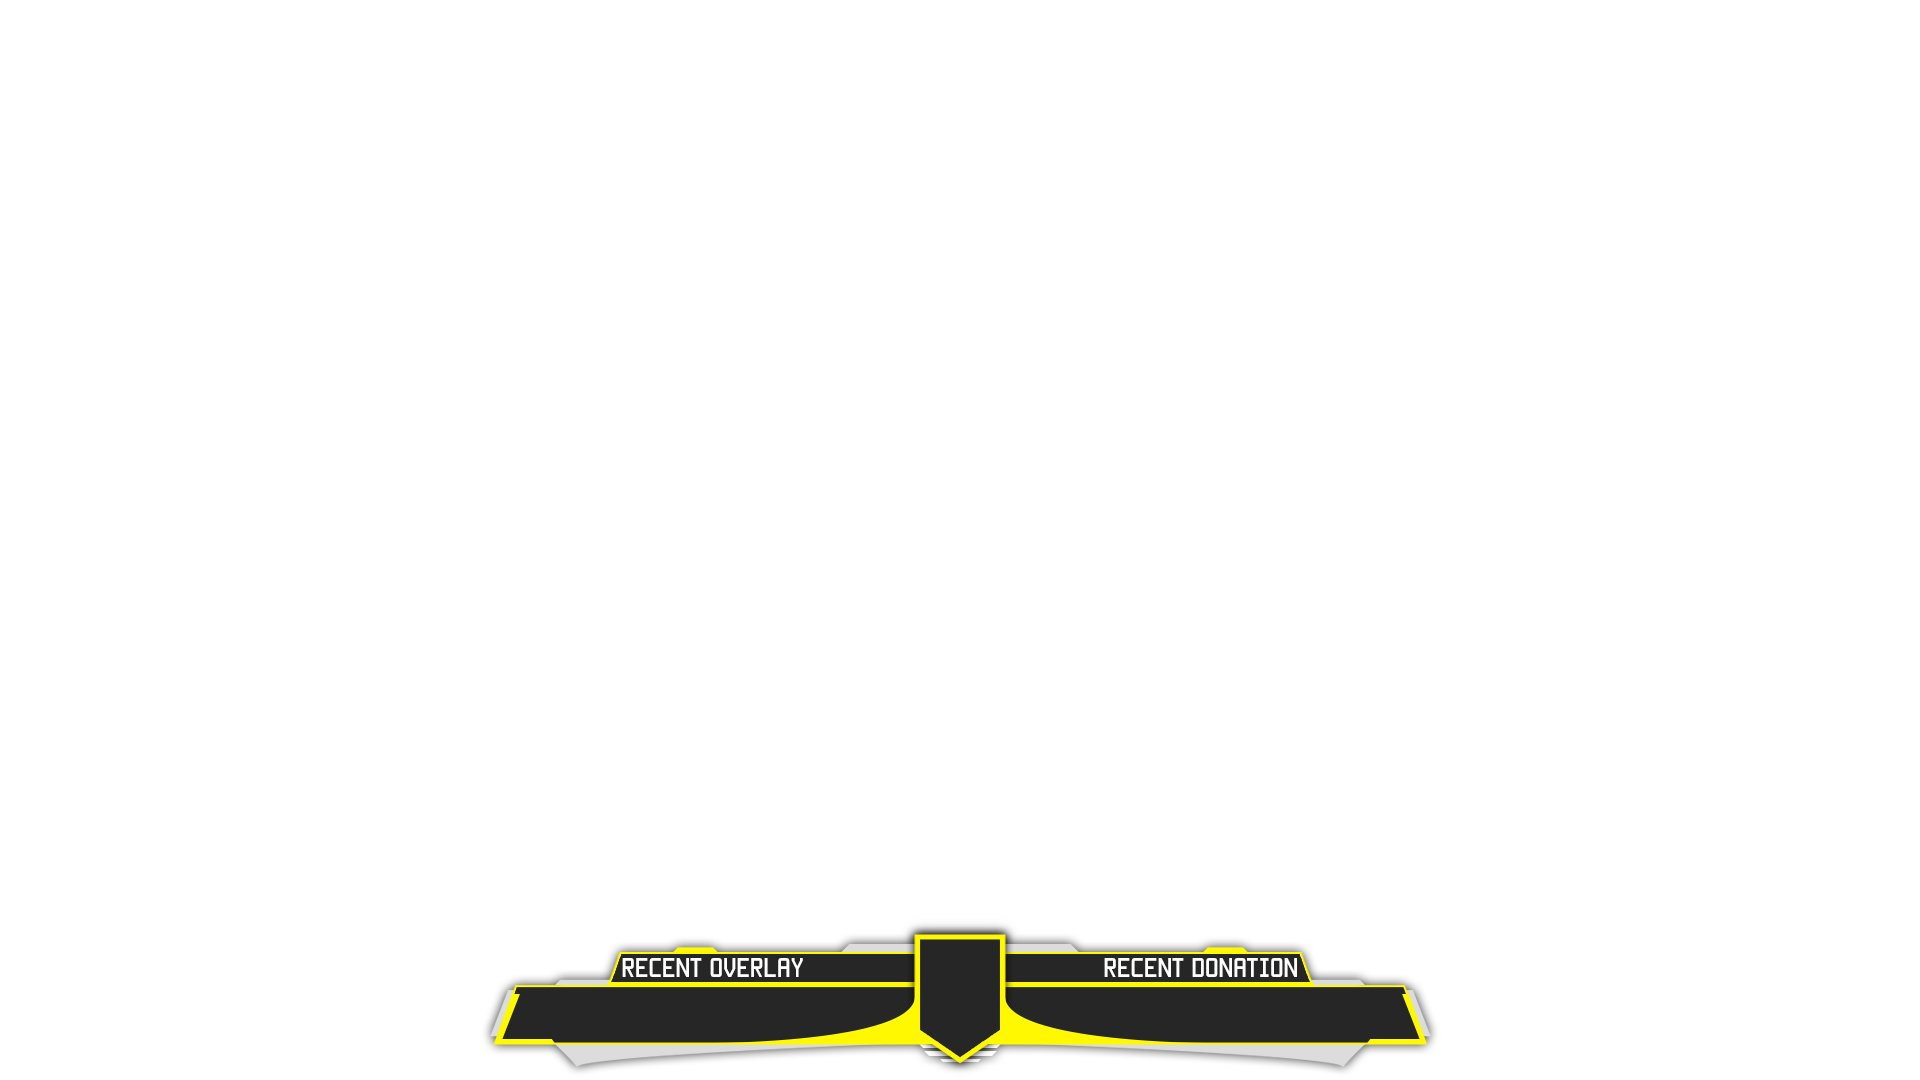 twitch overlay download